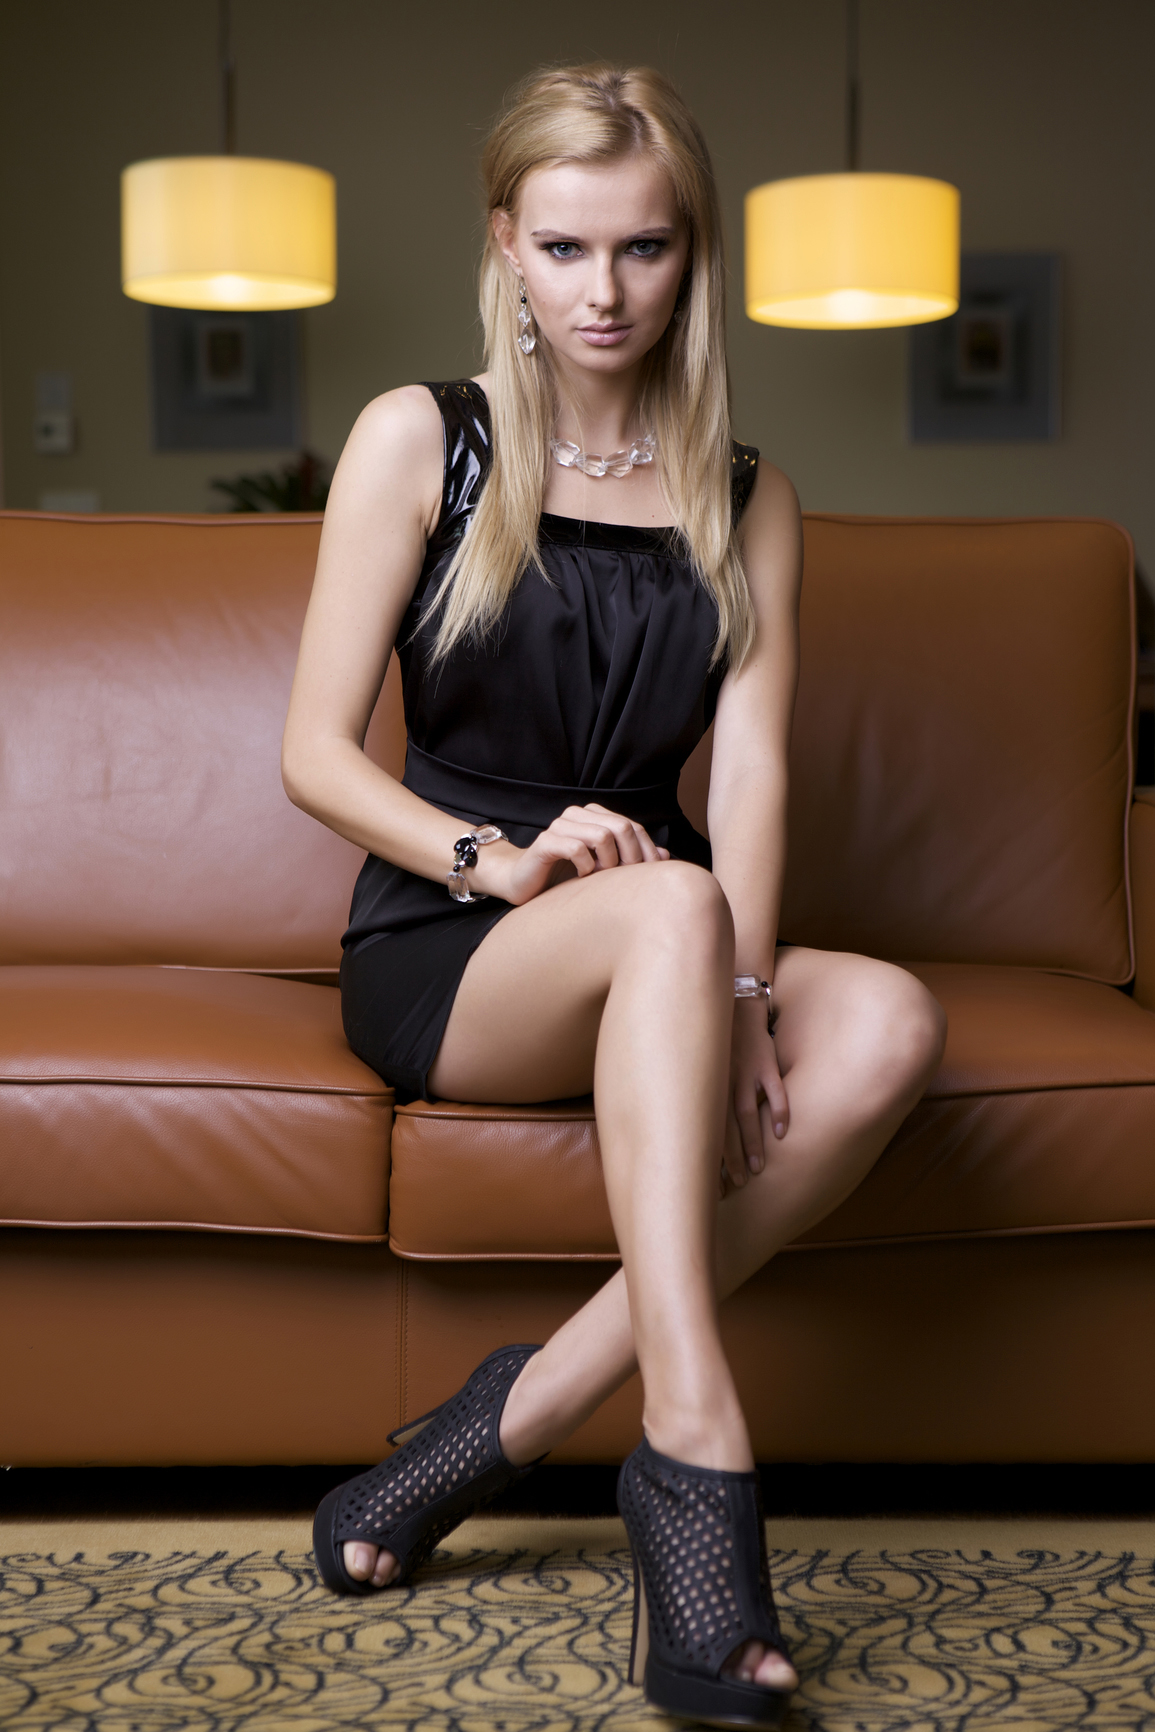 Brilliant Attractive Woman Wearing Little Black Dress Royalty Free Stock Photo